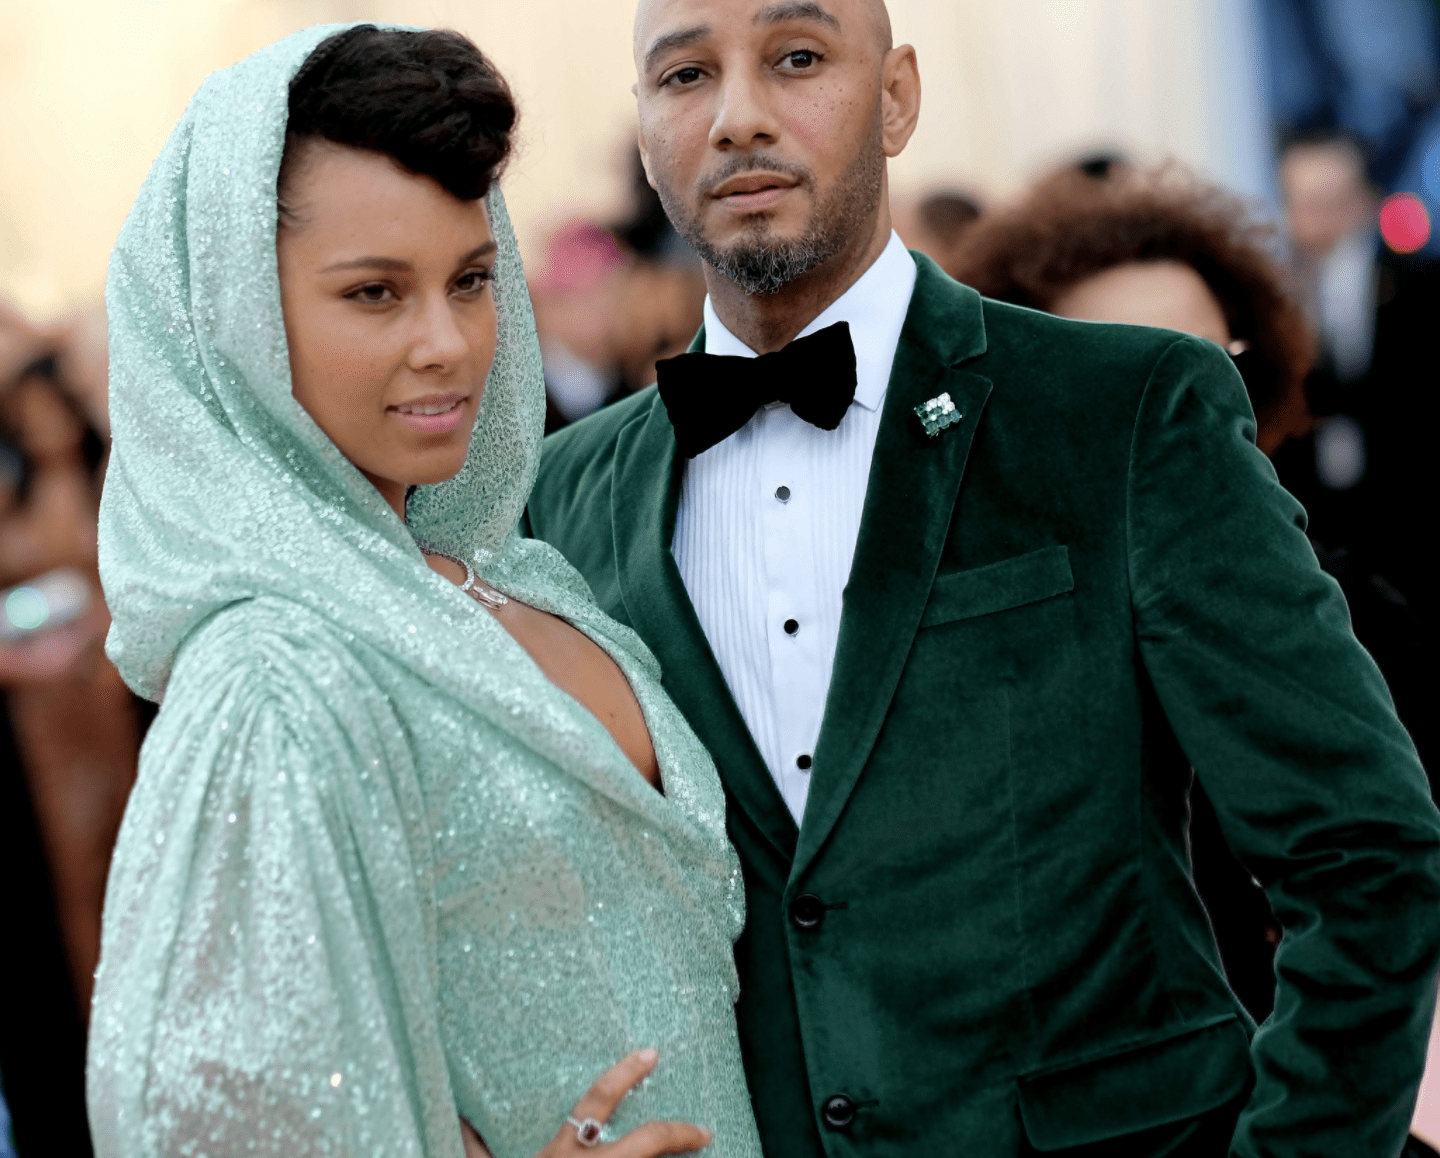 Alicia Keys and Swizz Beatz at the 2019 Met Gala at the Metropolitan Museum of Art in 2019.   Photo: Getty Images